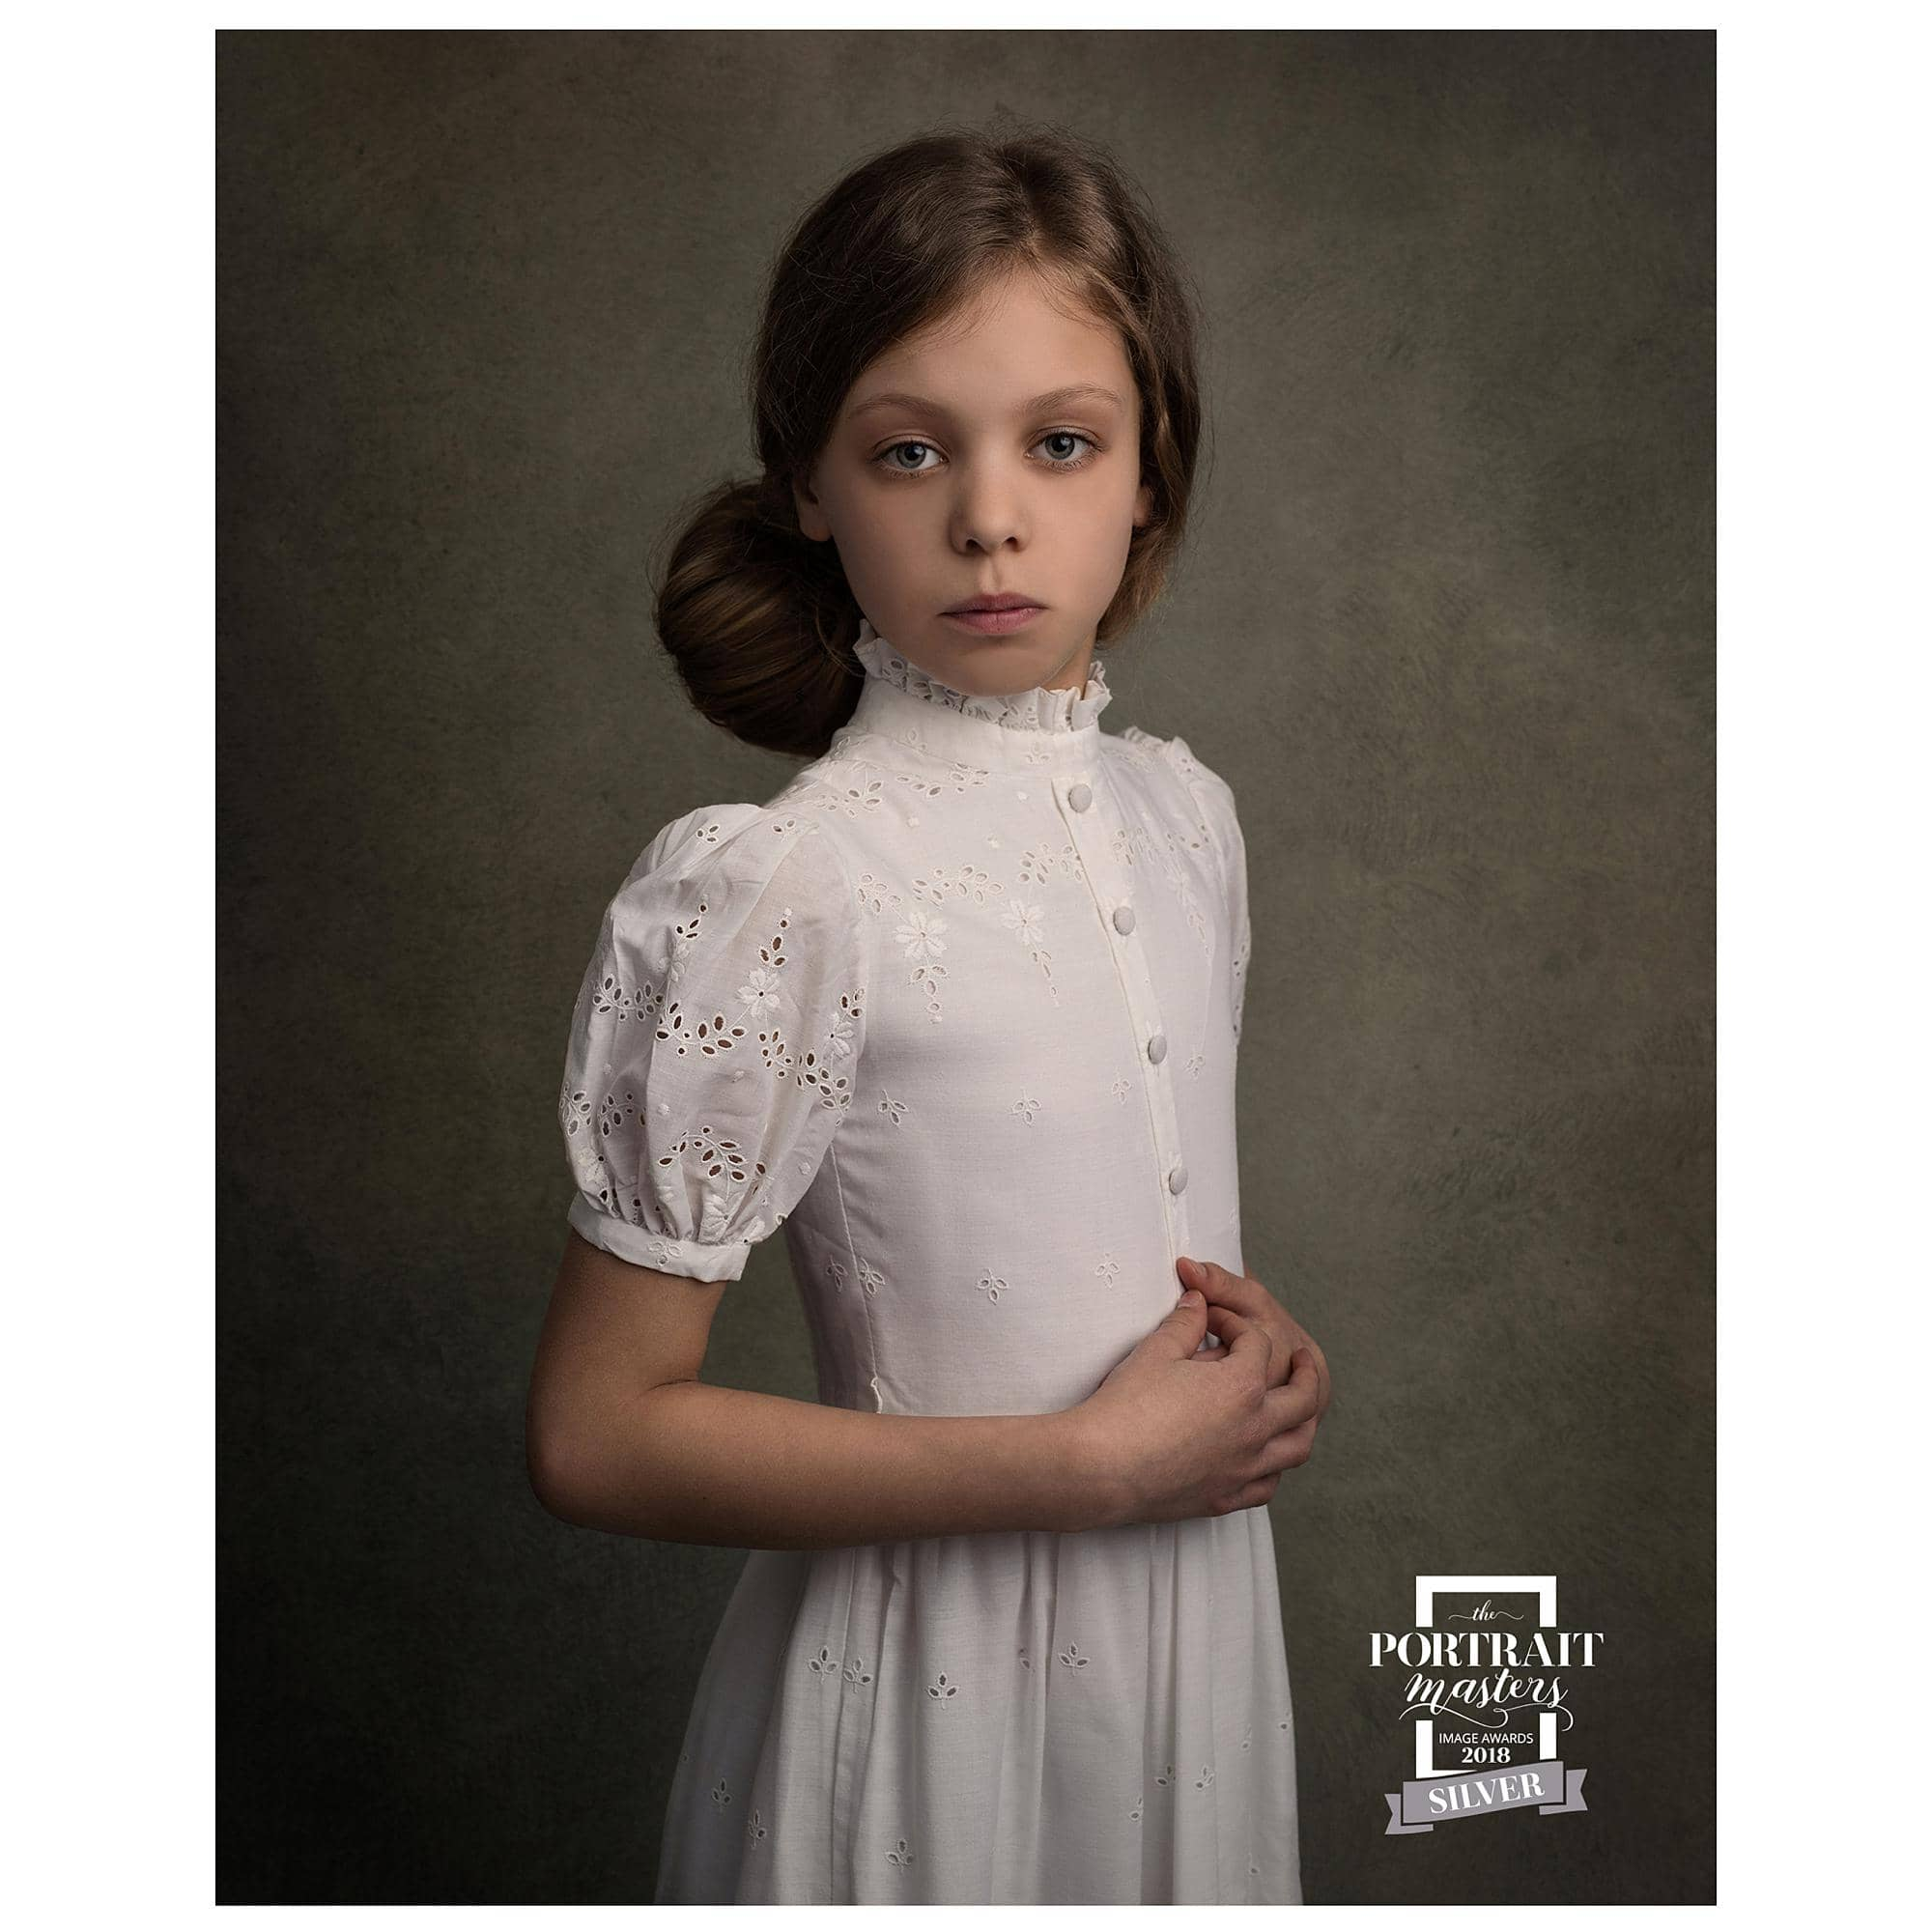 Fine Art Portrait of a Girl in a vintage white dress wins a Silver Award from the Portrait Masters